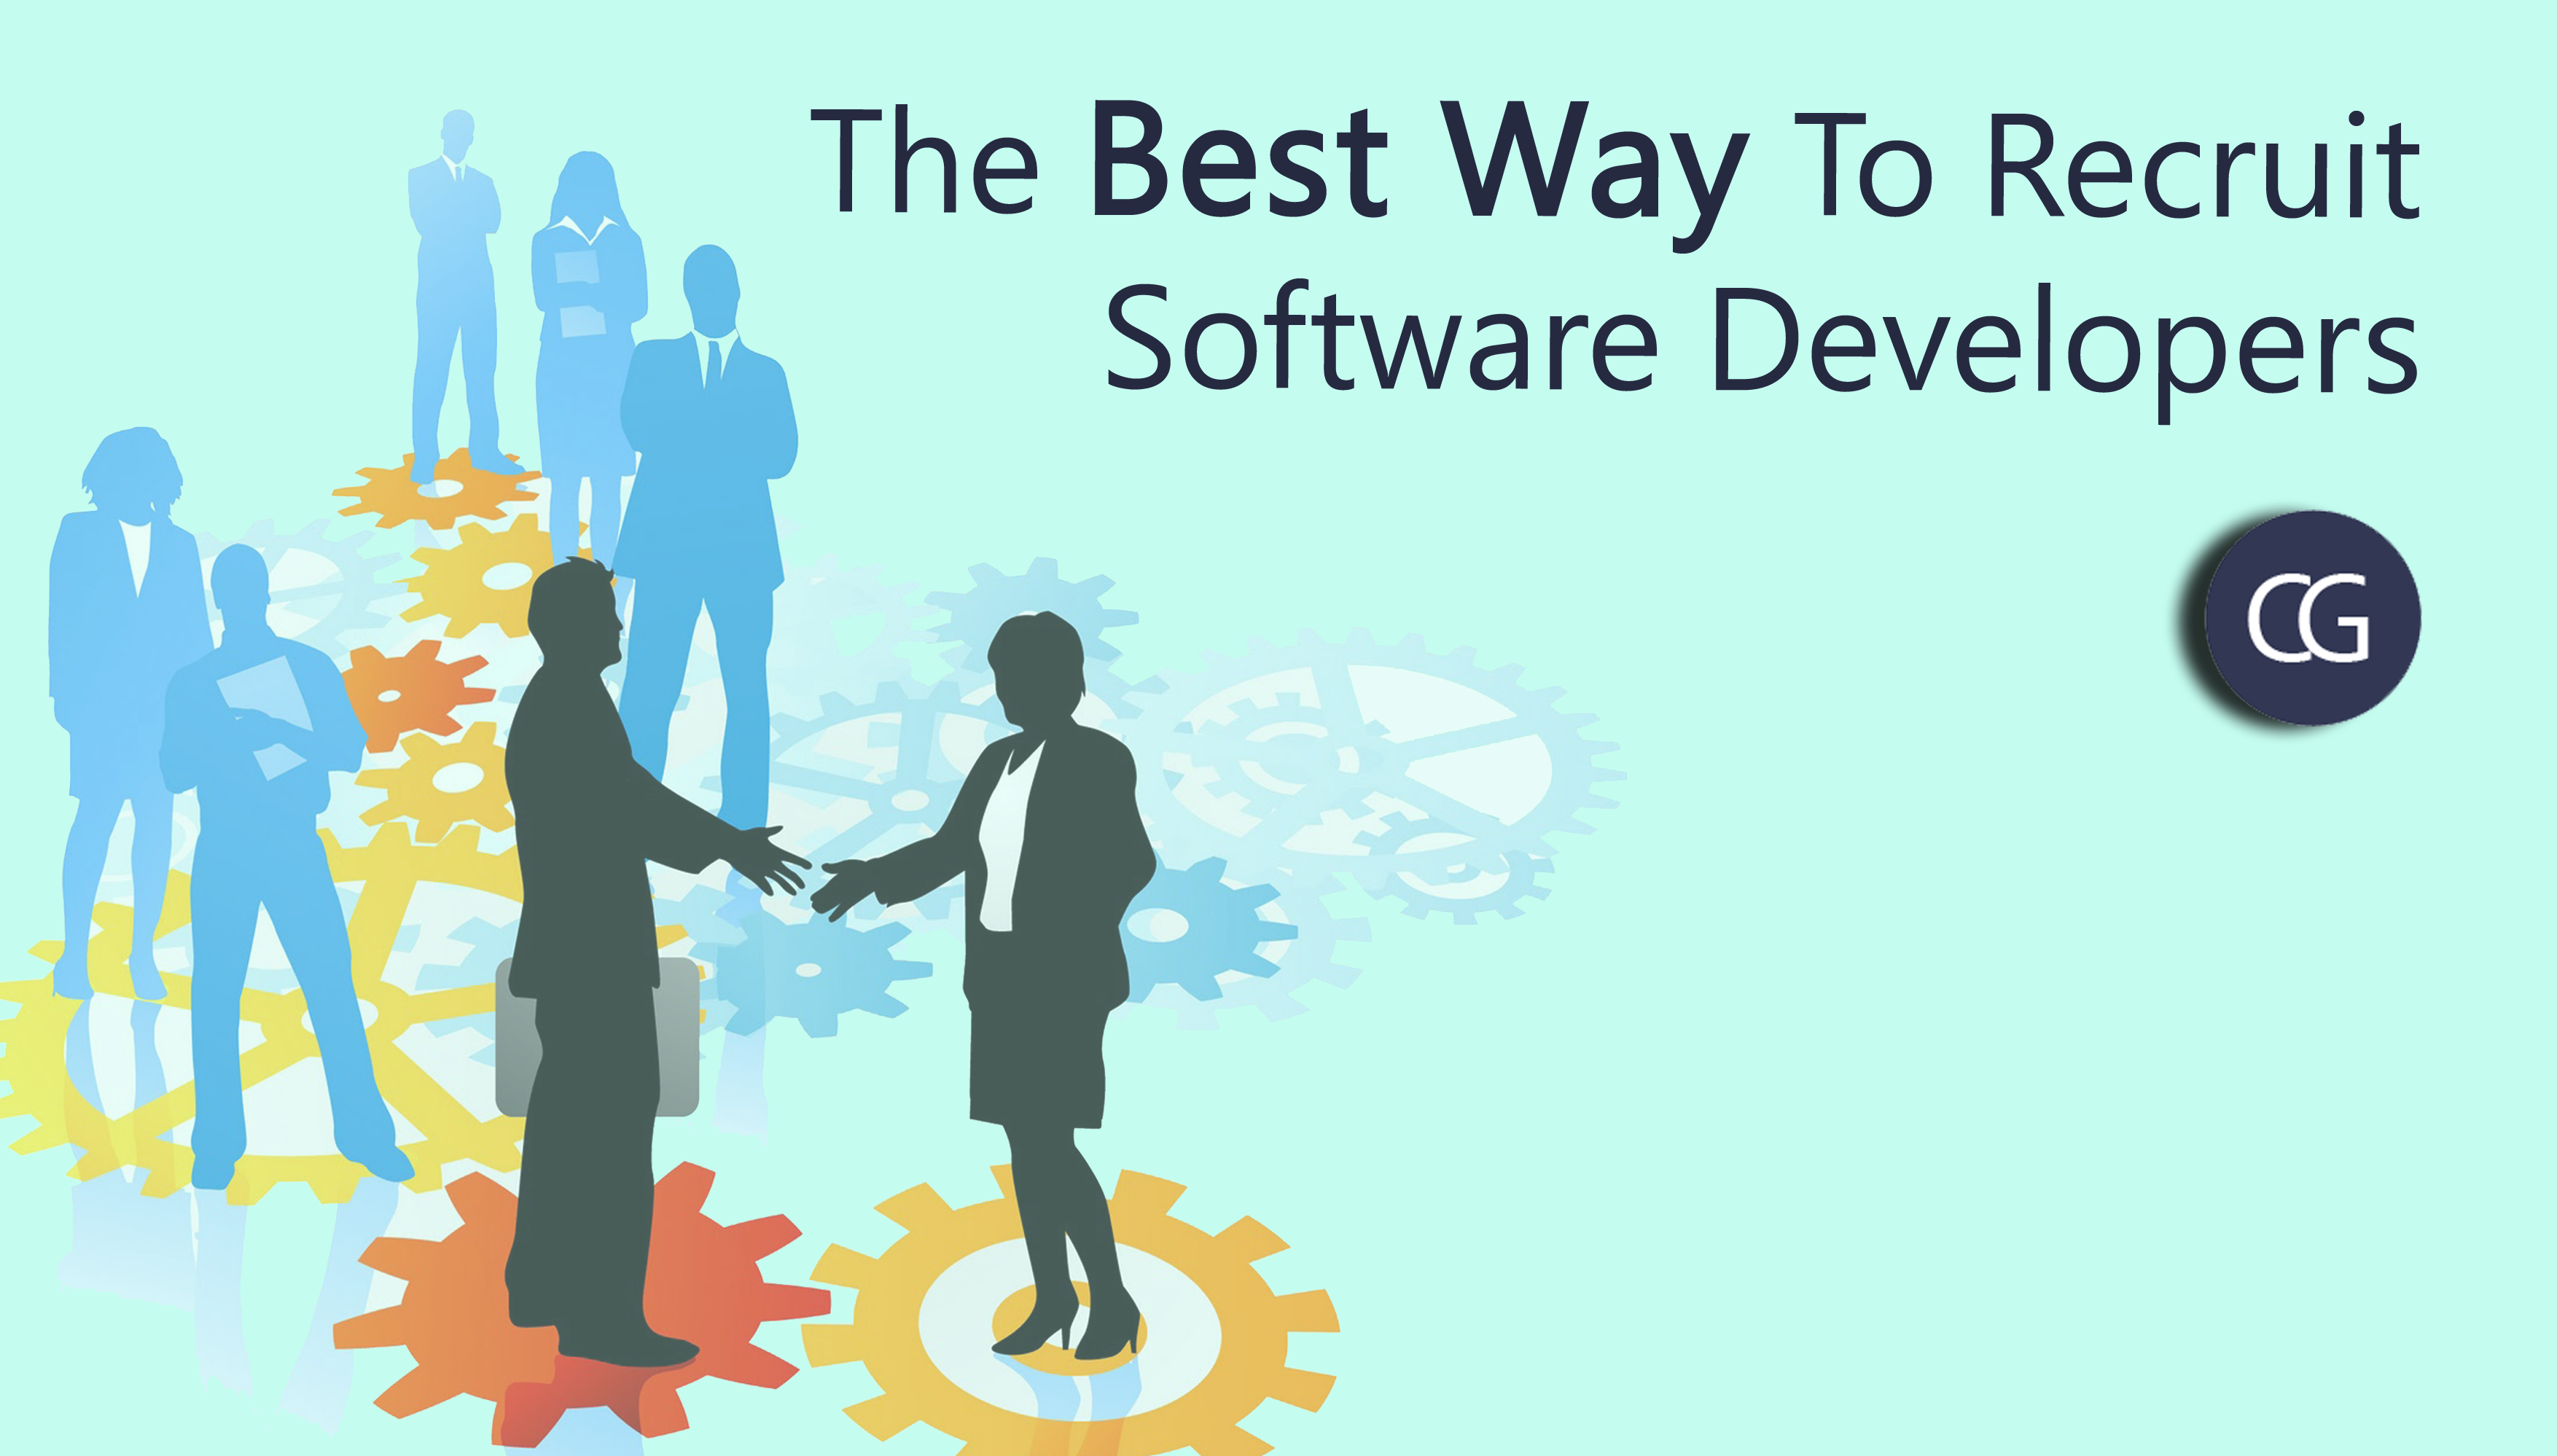 The best way to recruit Software Developer